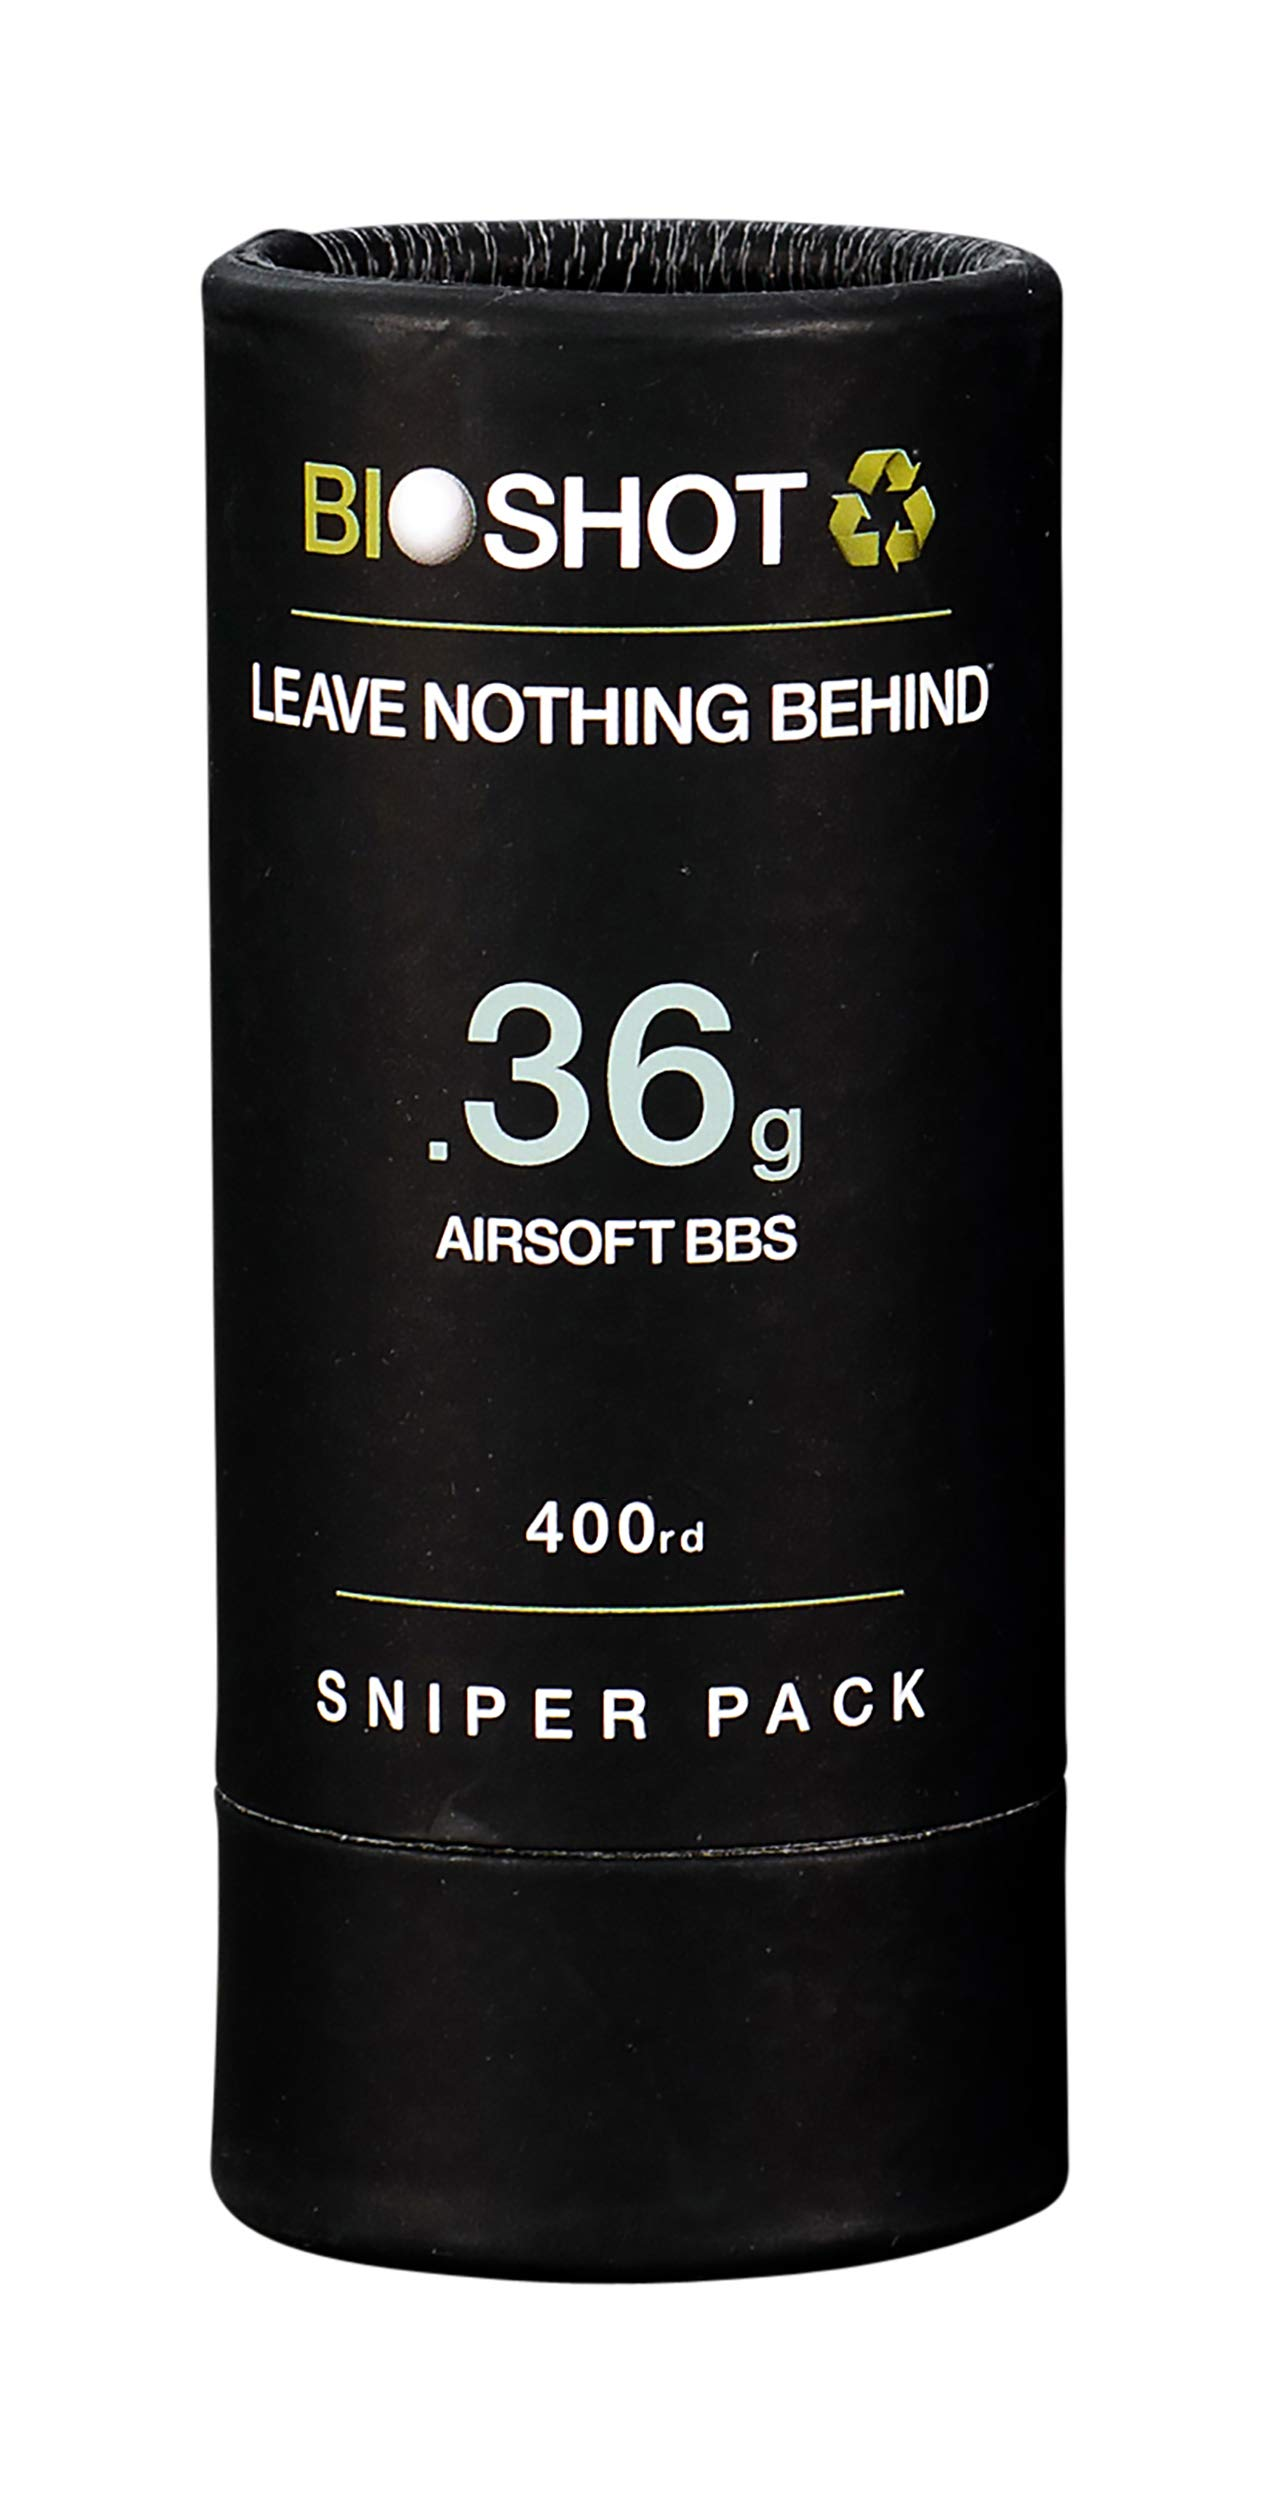 BioShot Biodegradable Airsoft BBS -.36g Super Slick Seamless Sniper Weight Competition Match Grade for All 6mm Airsoft…